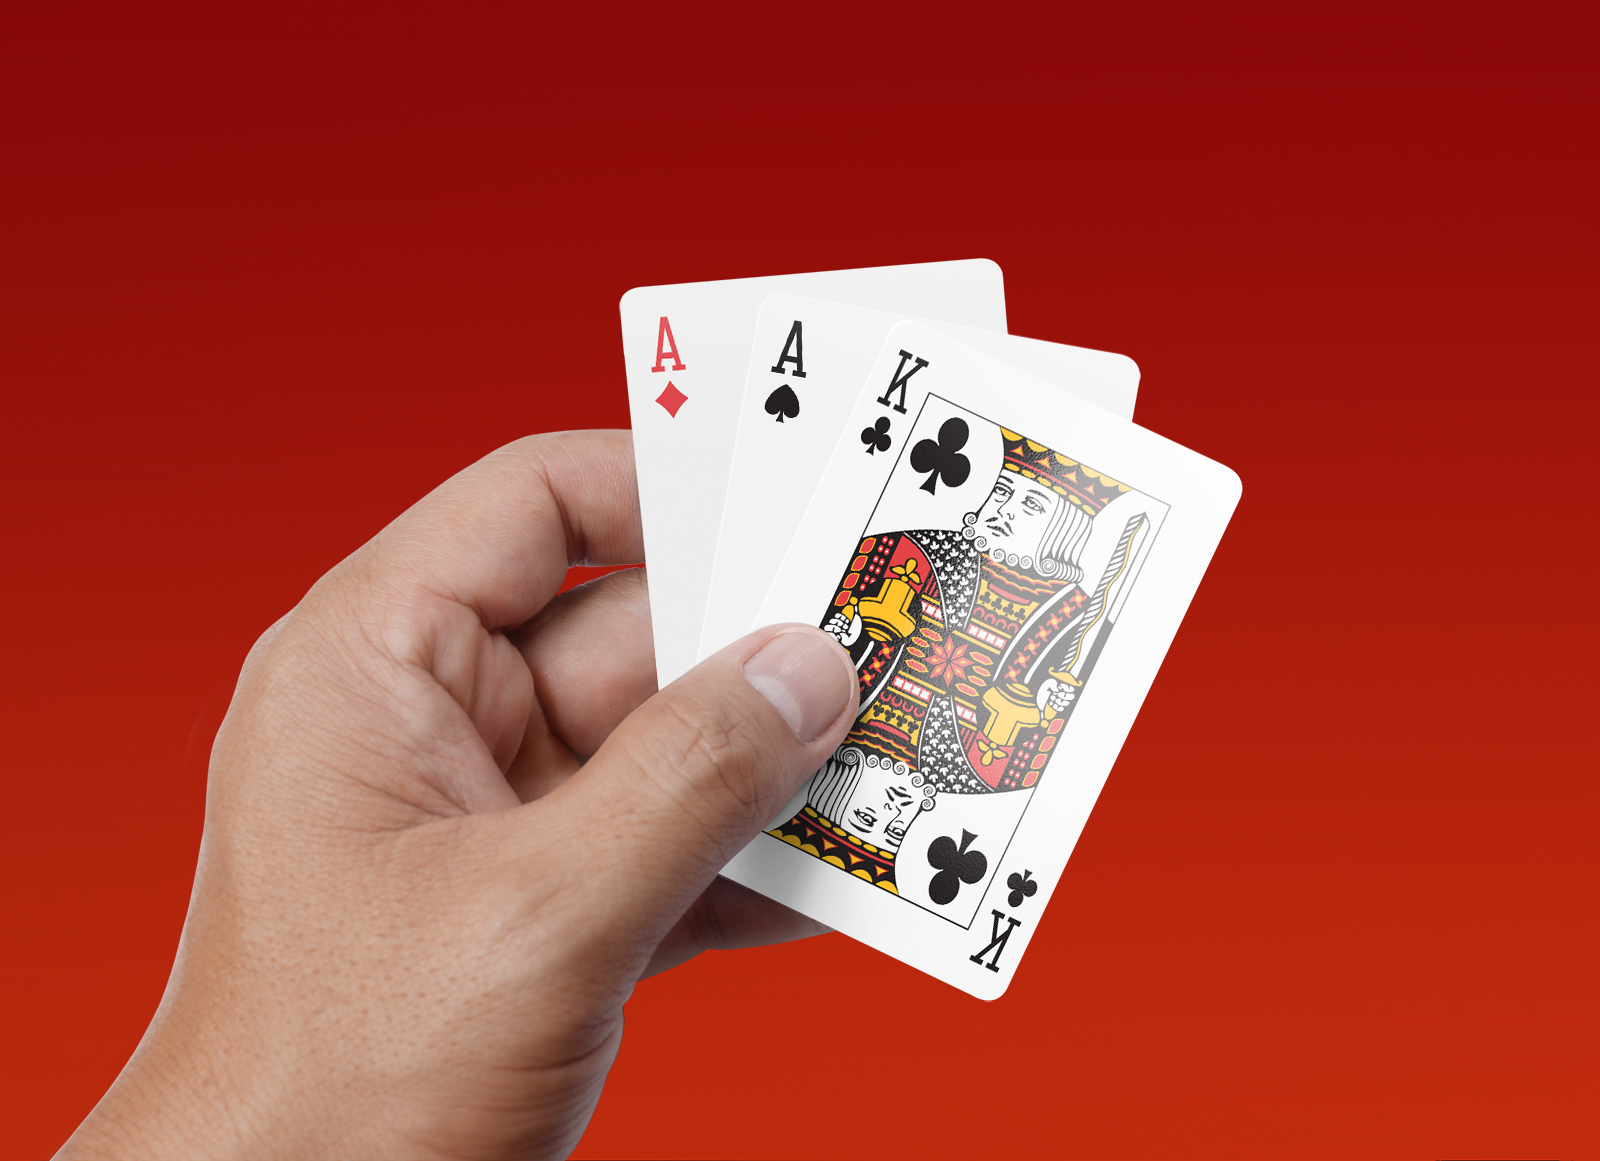 I am sharing my deck of playing cards here and hope you will find it useful for your future projects. Free Deck Of Playing Cards Mockup Psd Set Good Mockups